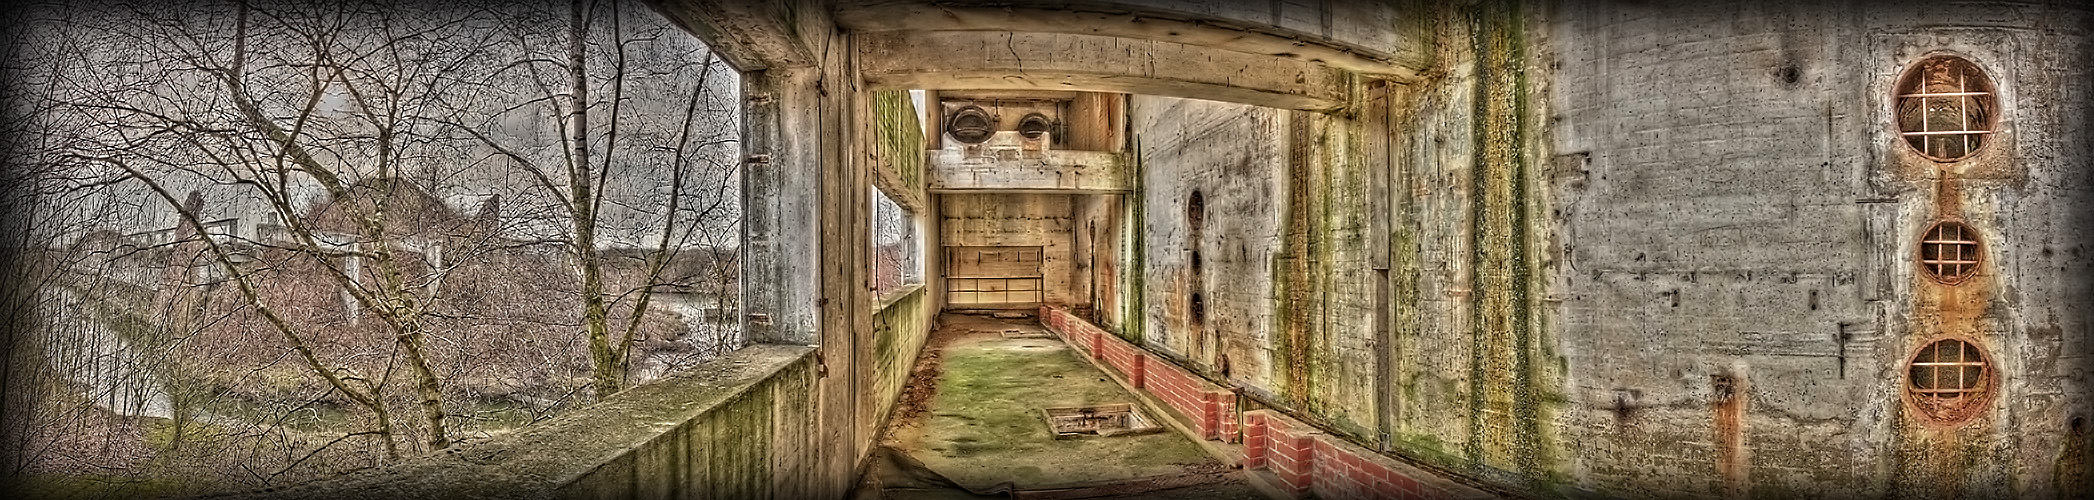 Lost Place 1